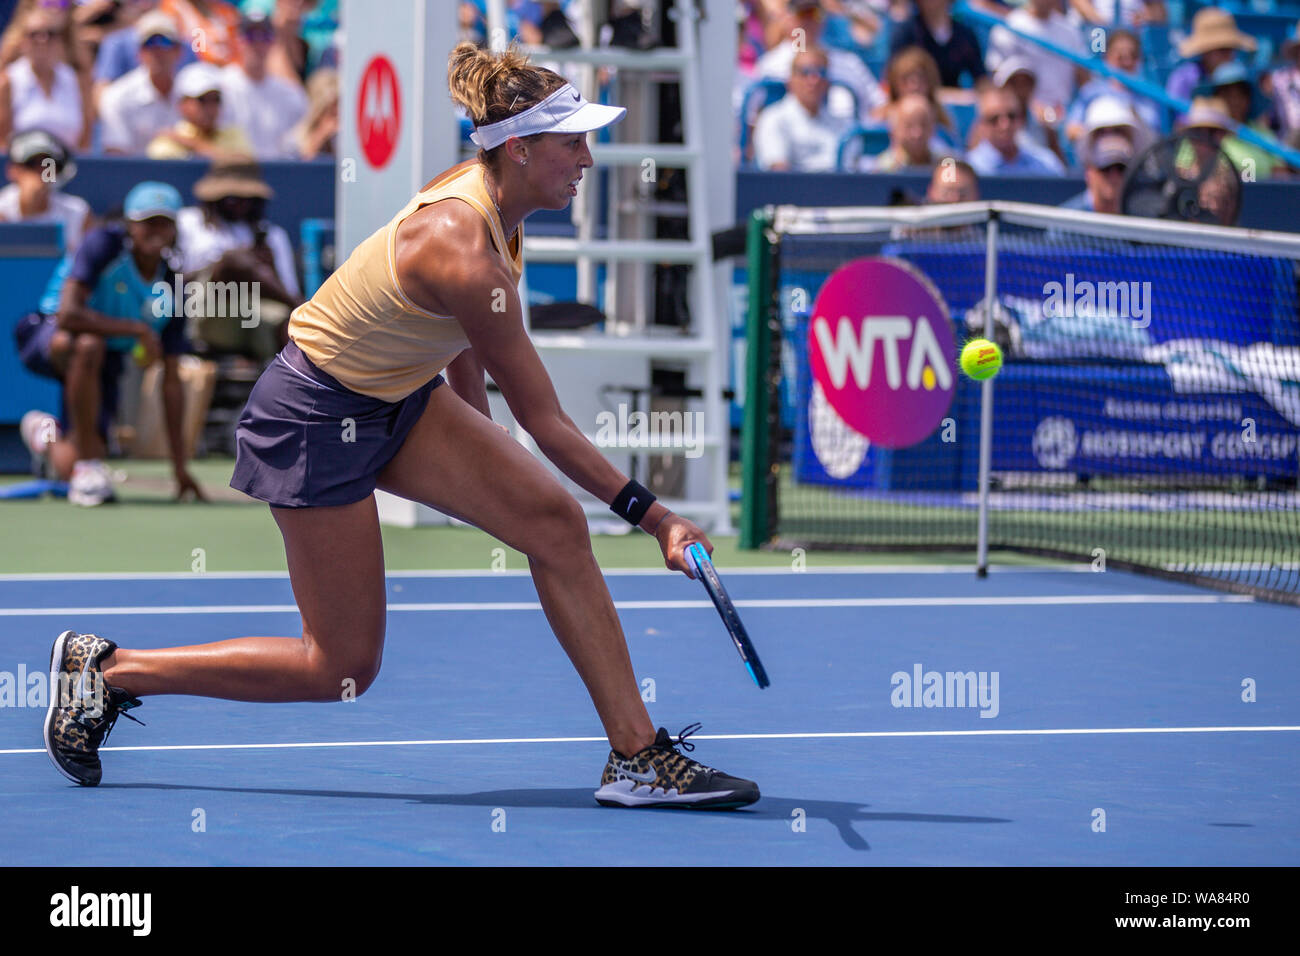 August 18, 2019, Mason, Ohio, USA: Madison Keys (USA) comes to the net to return a shot during the Women's Final of the Western and Southern Open at the Lindner Family Tennis Center, Mason, Oh. (Credit Image: © Scott Stuart/ZUMA Wire) Stock Photo